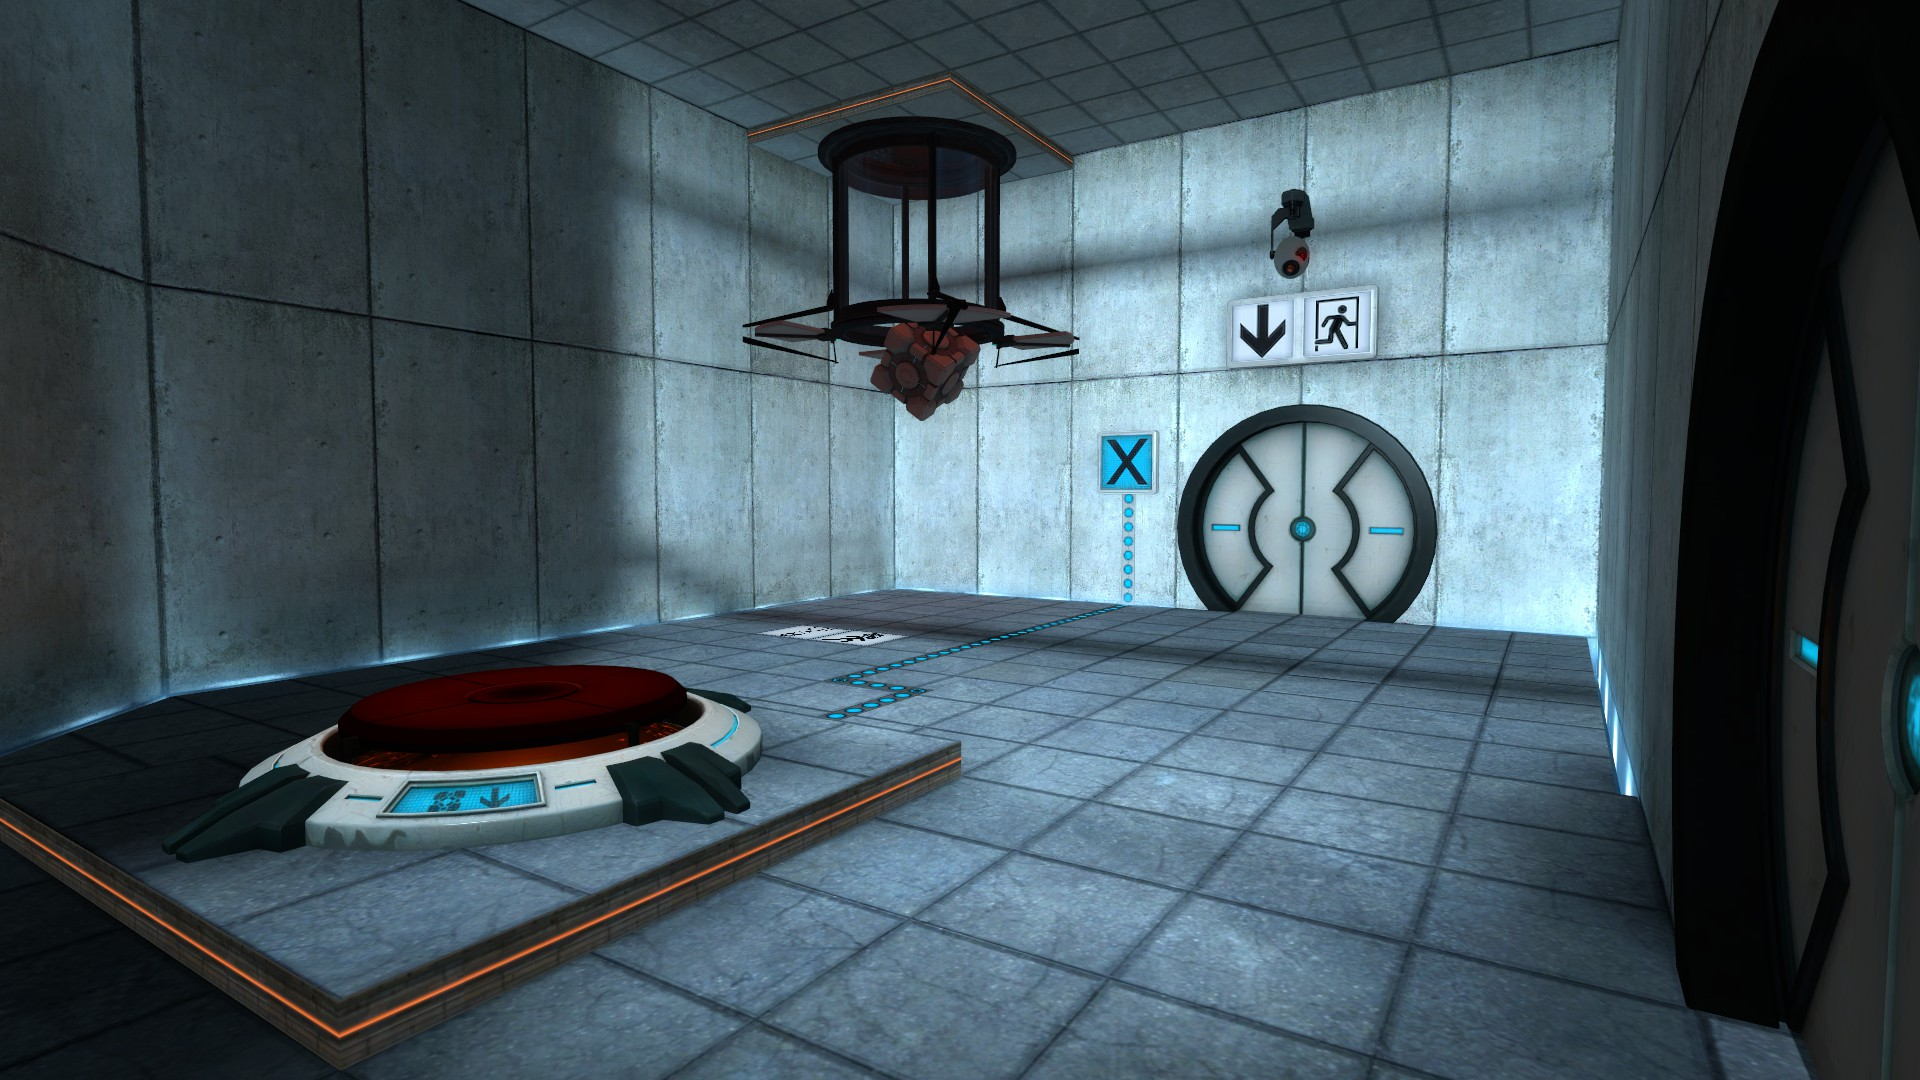 The first test chamber